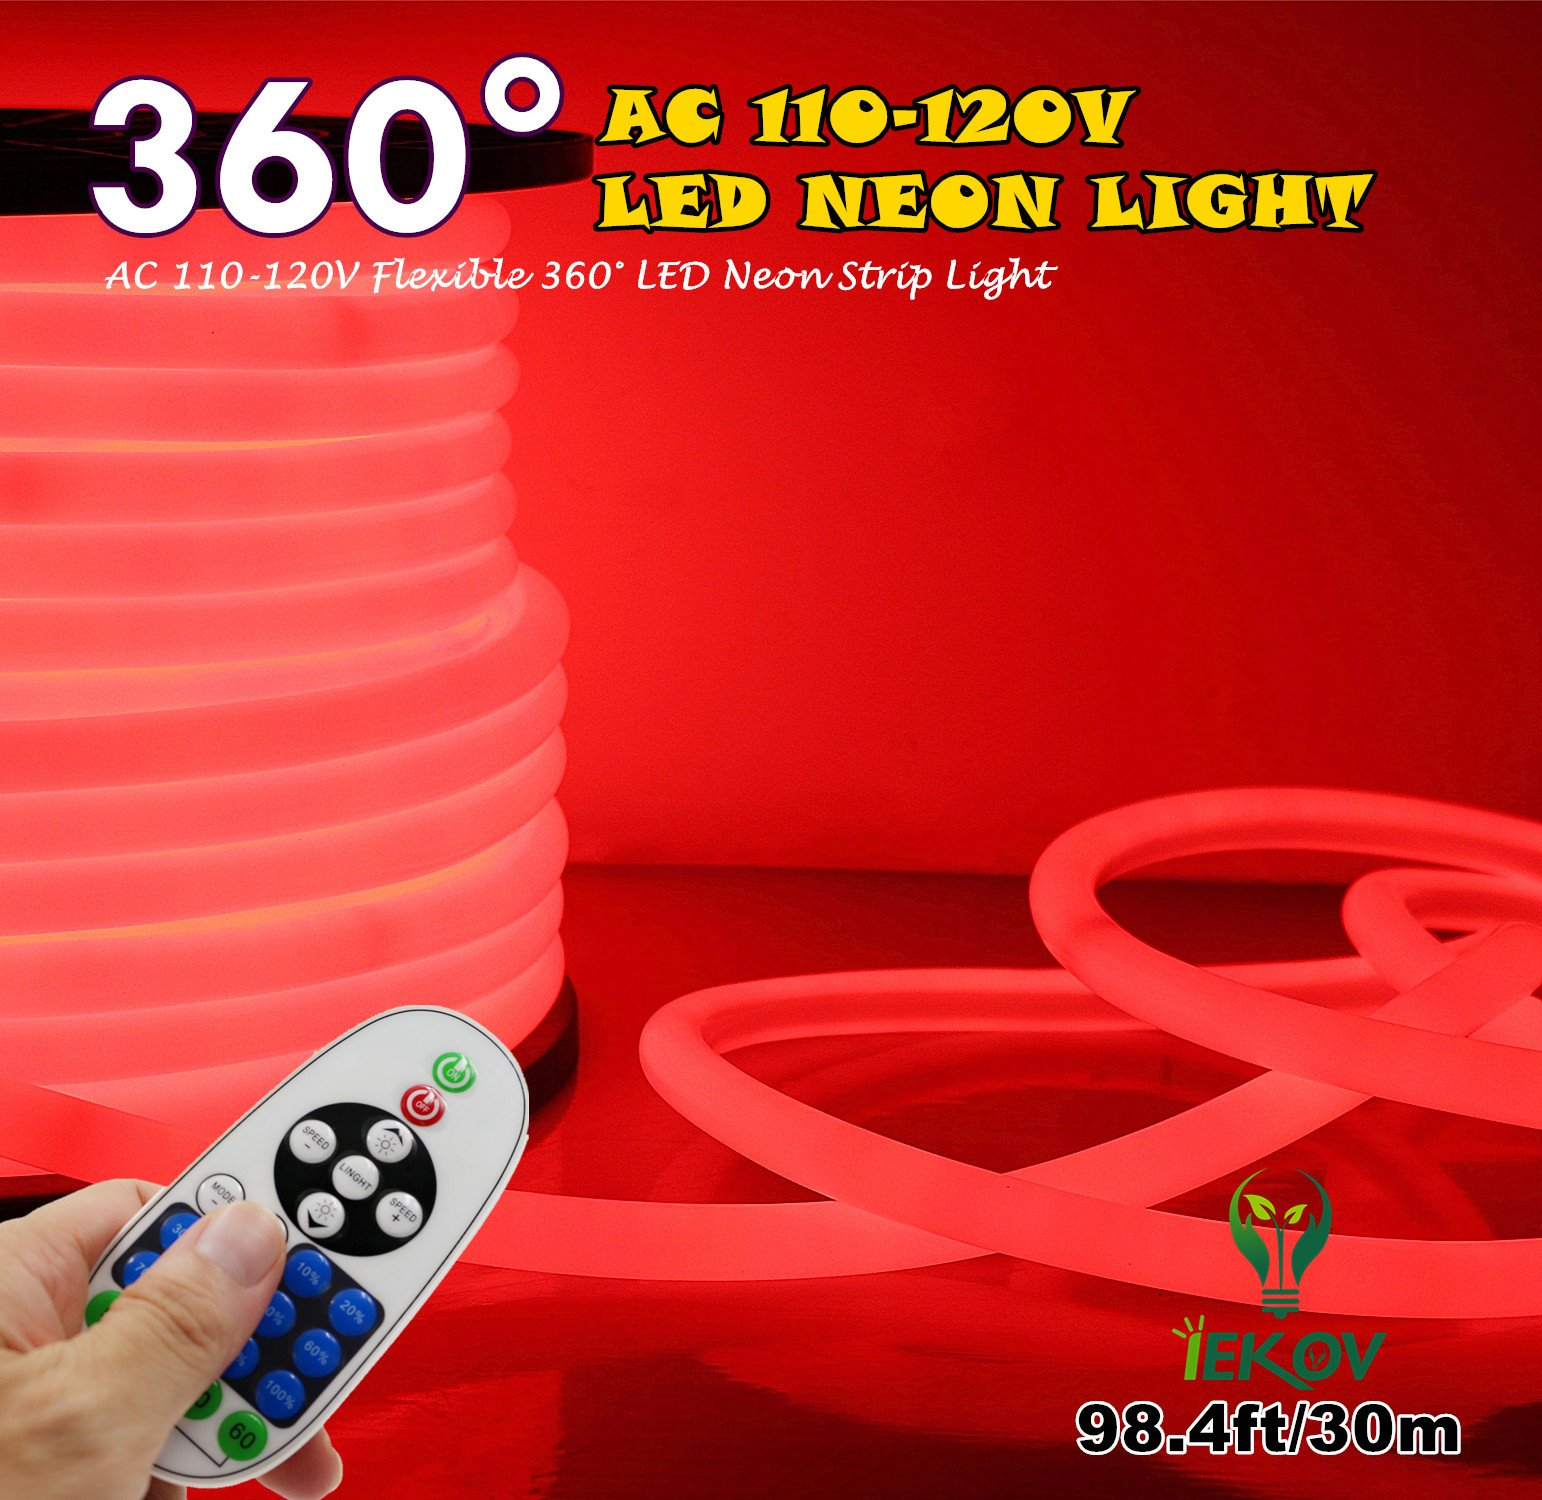 [UPGRADE] 360° LED NEON LIGHT, IEKOV™ AC 110-120V Flexible 360 Degree LED Neon Strip Lights, Dimmable & Waterproof NEON LED Rope Light + Remote Controller for Decoration (98.4ft/30m, Red)